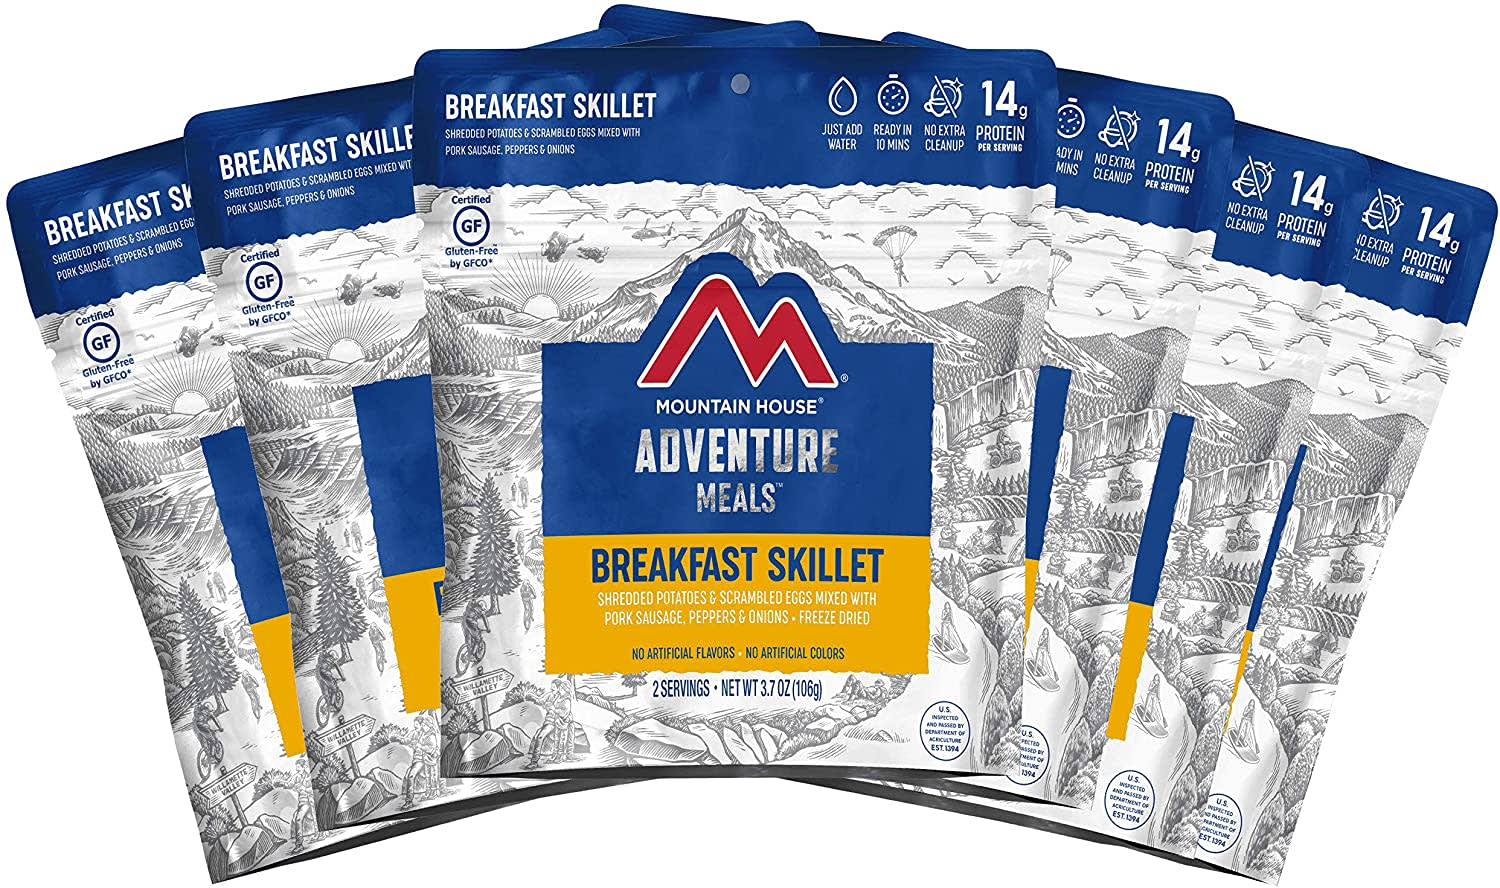 Mountain House Breakfast Skillet Freeze Dried Food 3.7-oz. Pouch 6-Pack